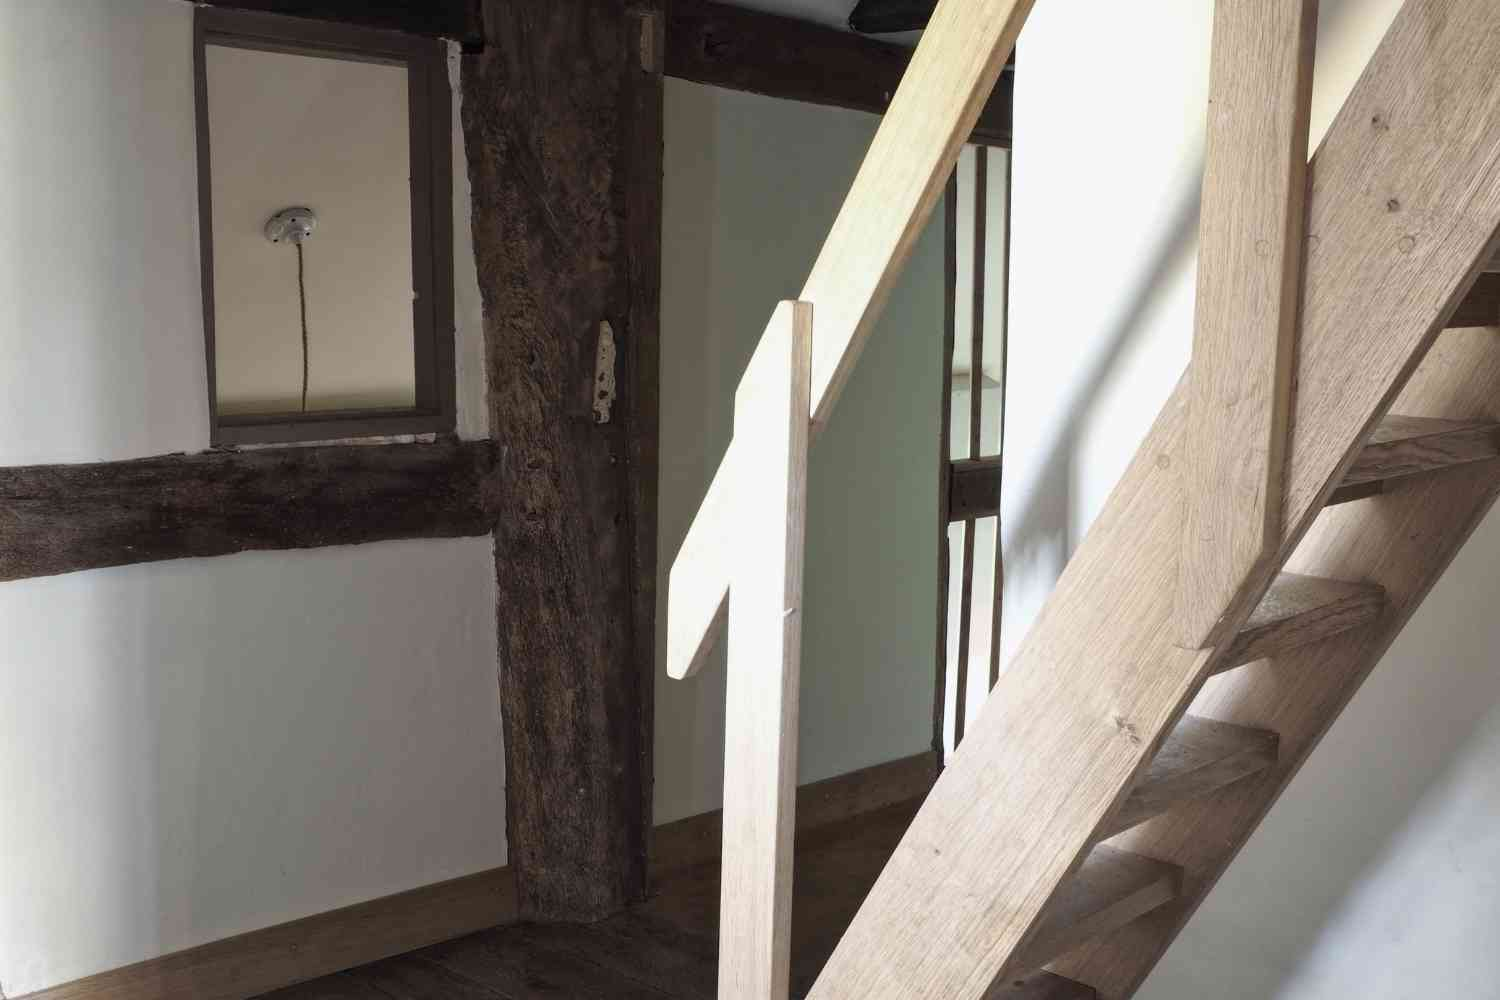 The steep attic staircase